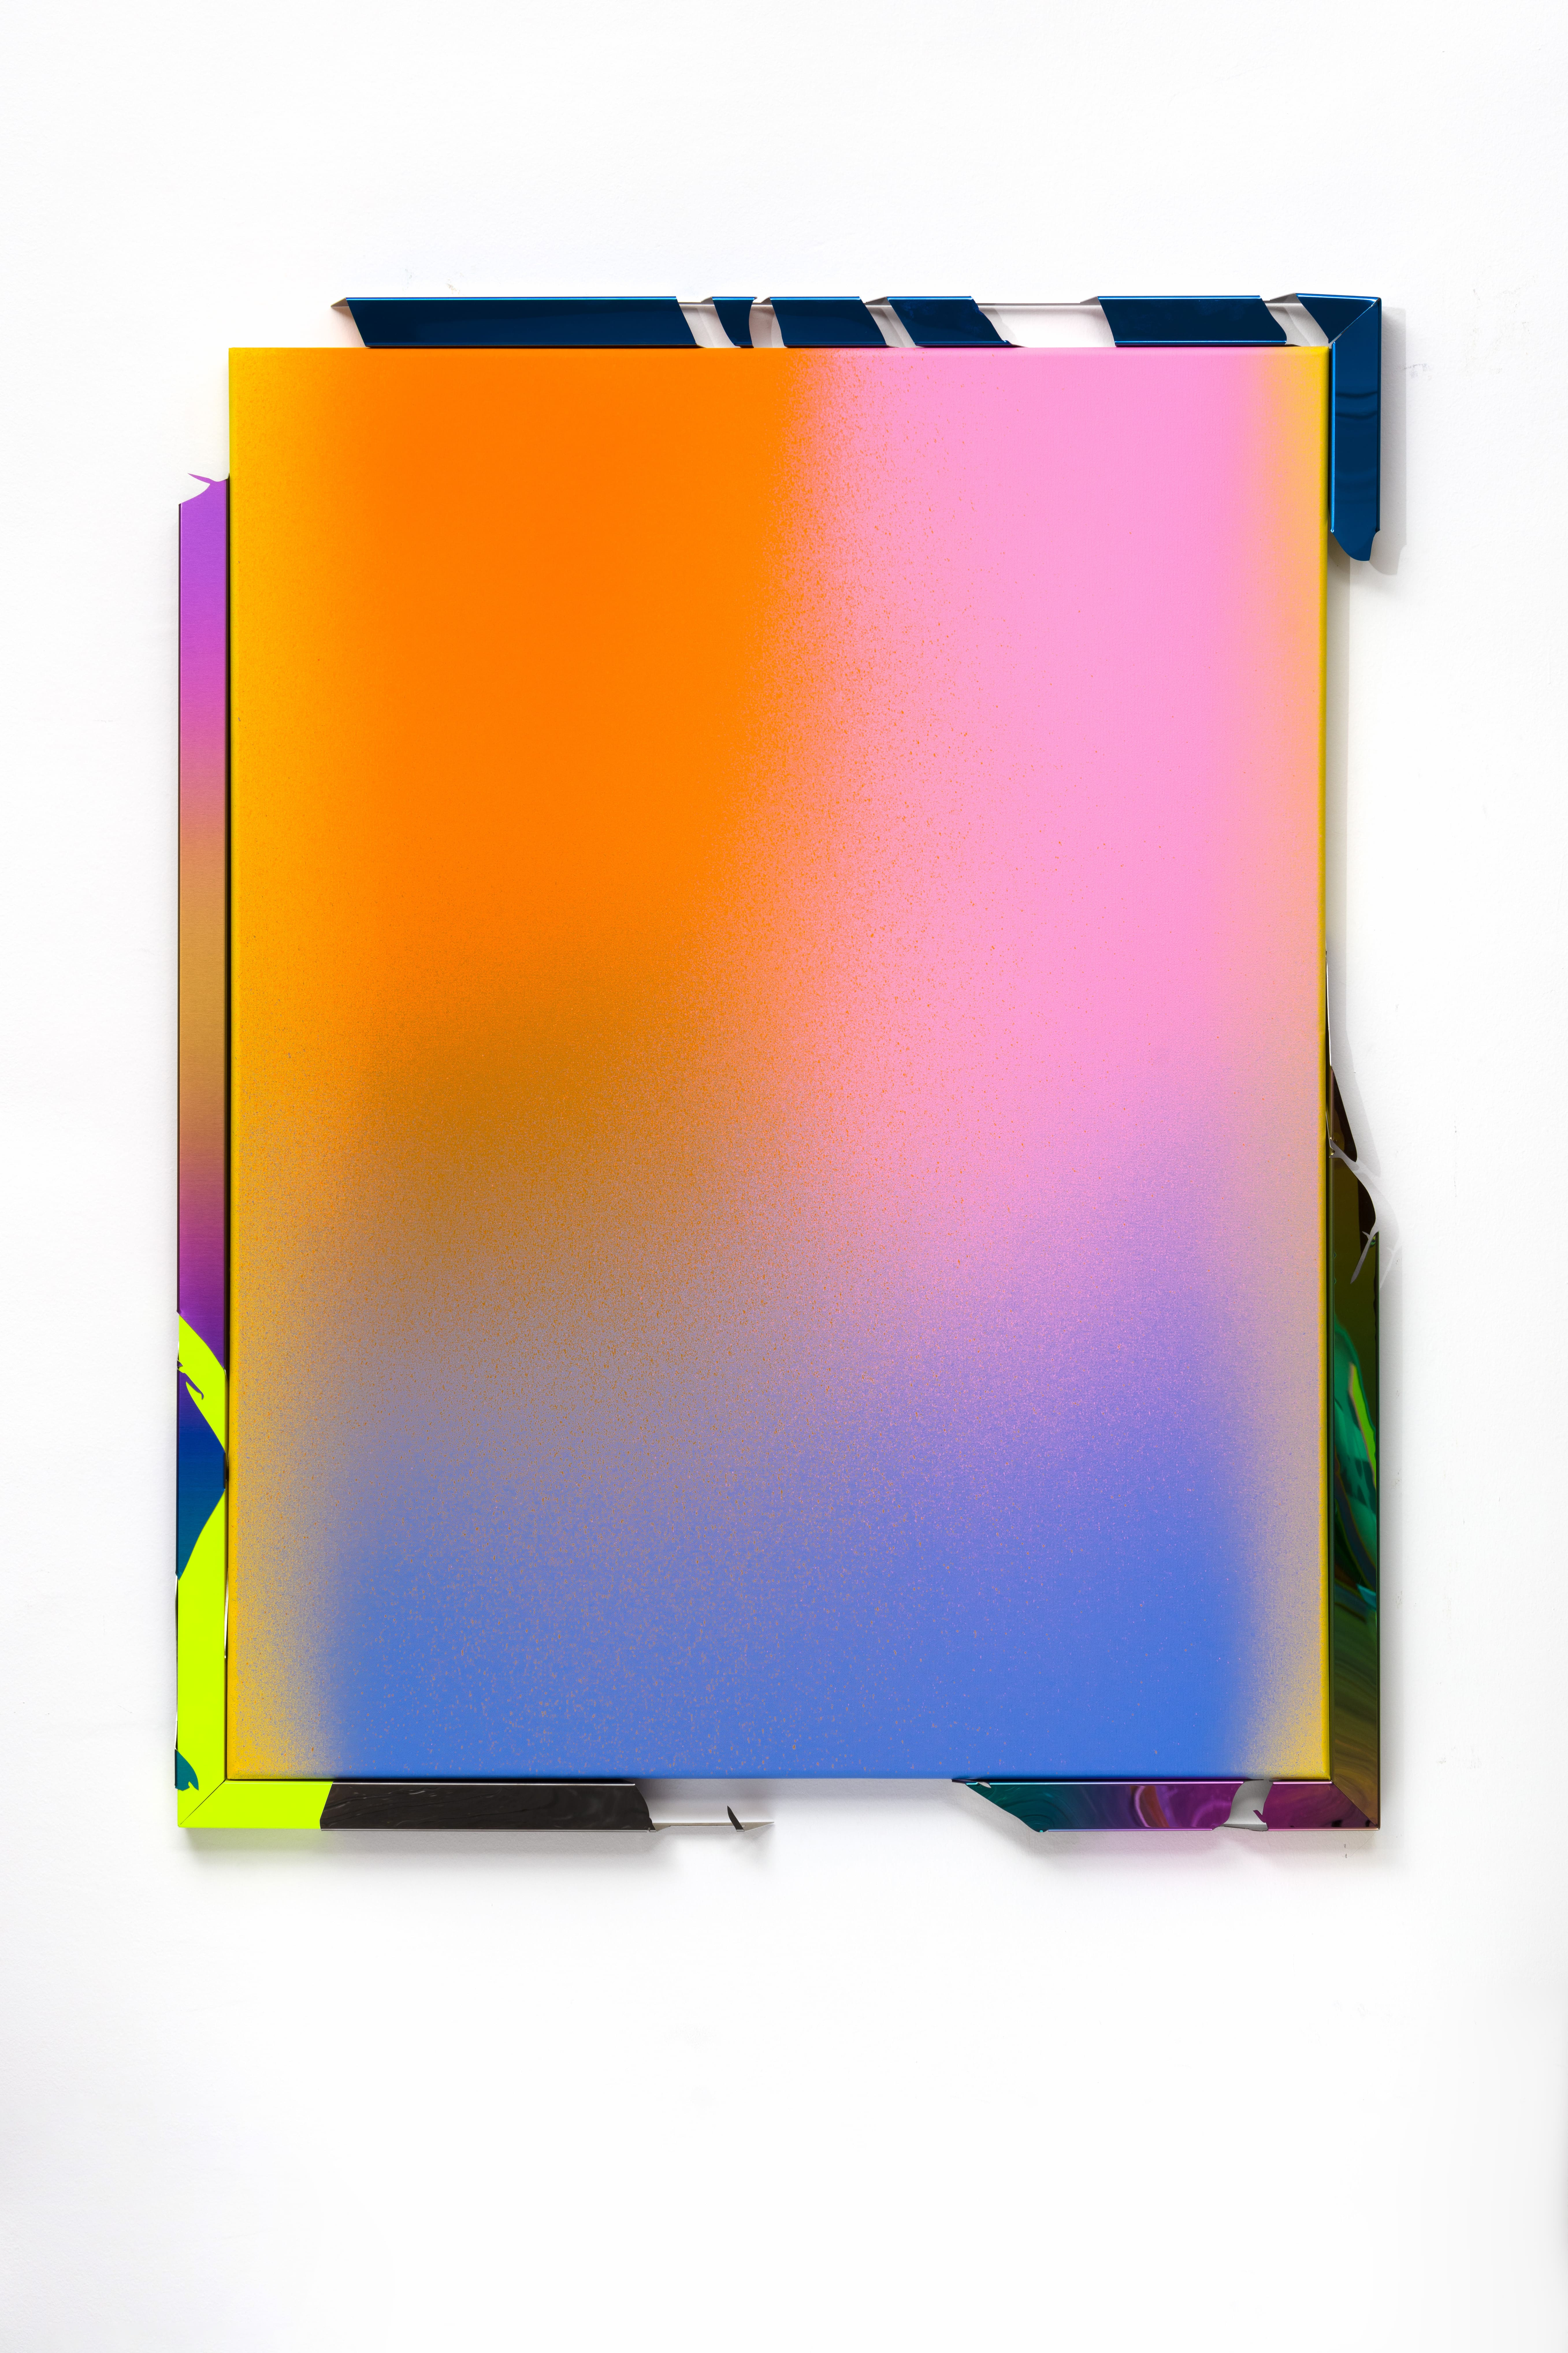 NemesM_Silence-Paintings-01_2021_139x109cm_PVD-coated-stainless-steel-powder-coated-stainless-steel-acrylic-canvas-wood-min